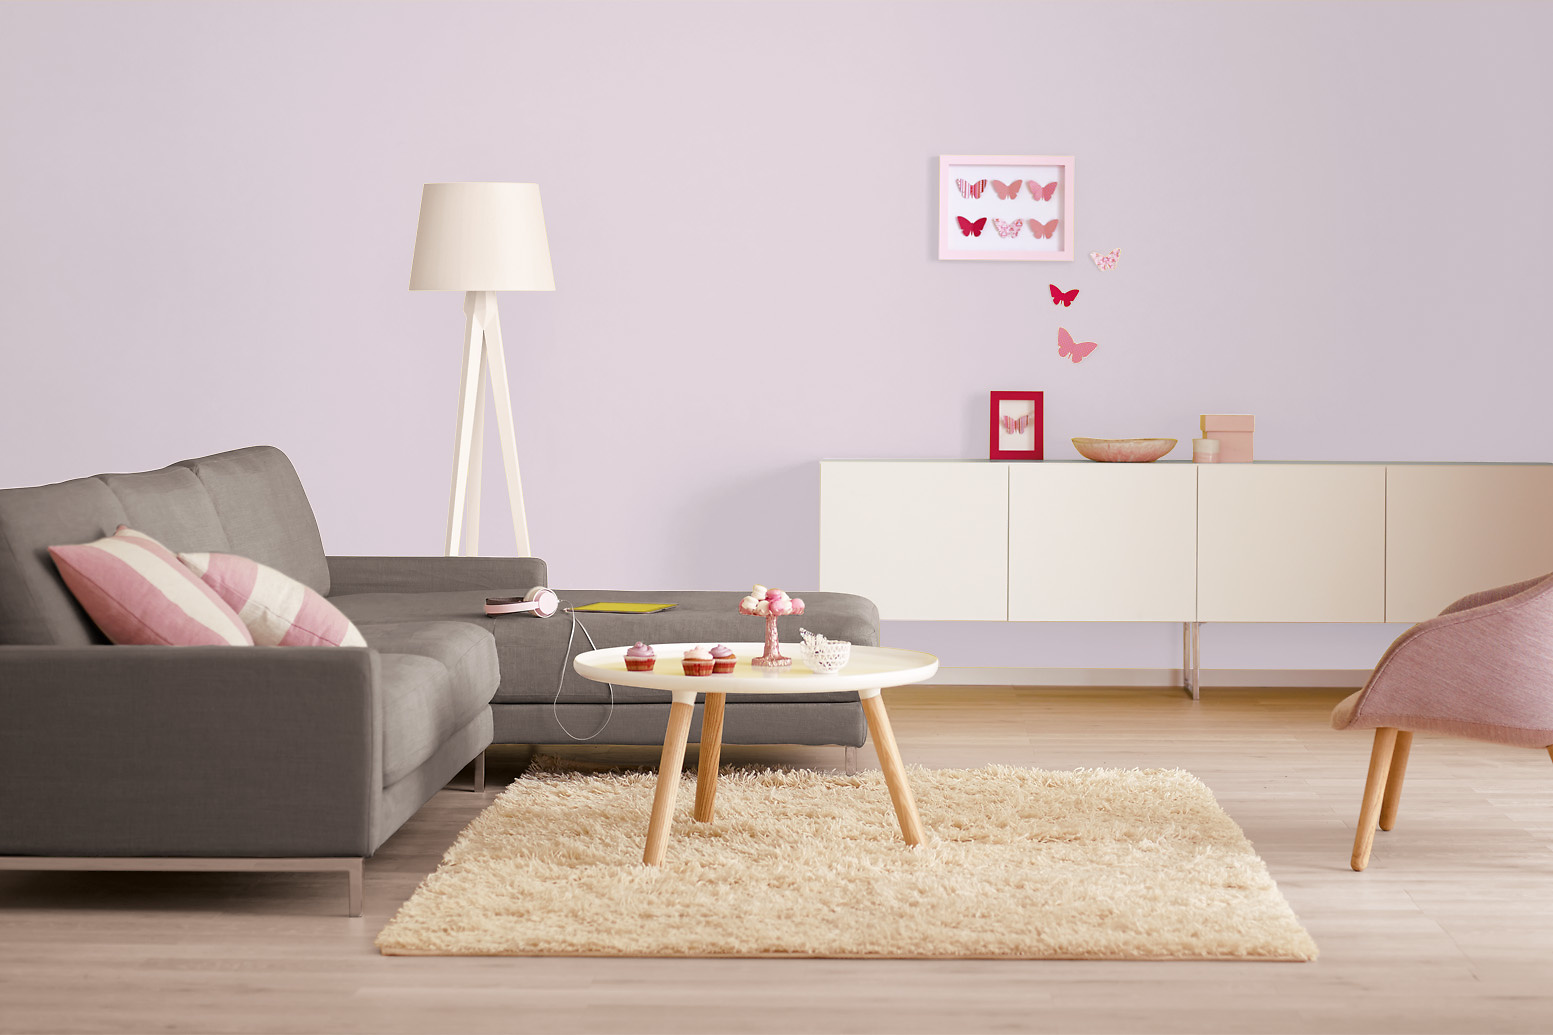 innenfarbe in pastellrosa ros streichen alpina. Black Bedroom Furniture Sets. Home Design Ideas